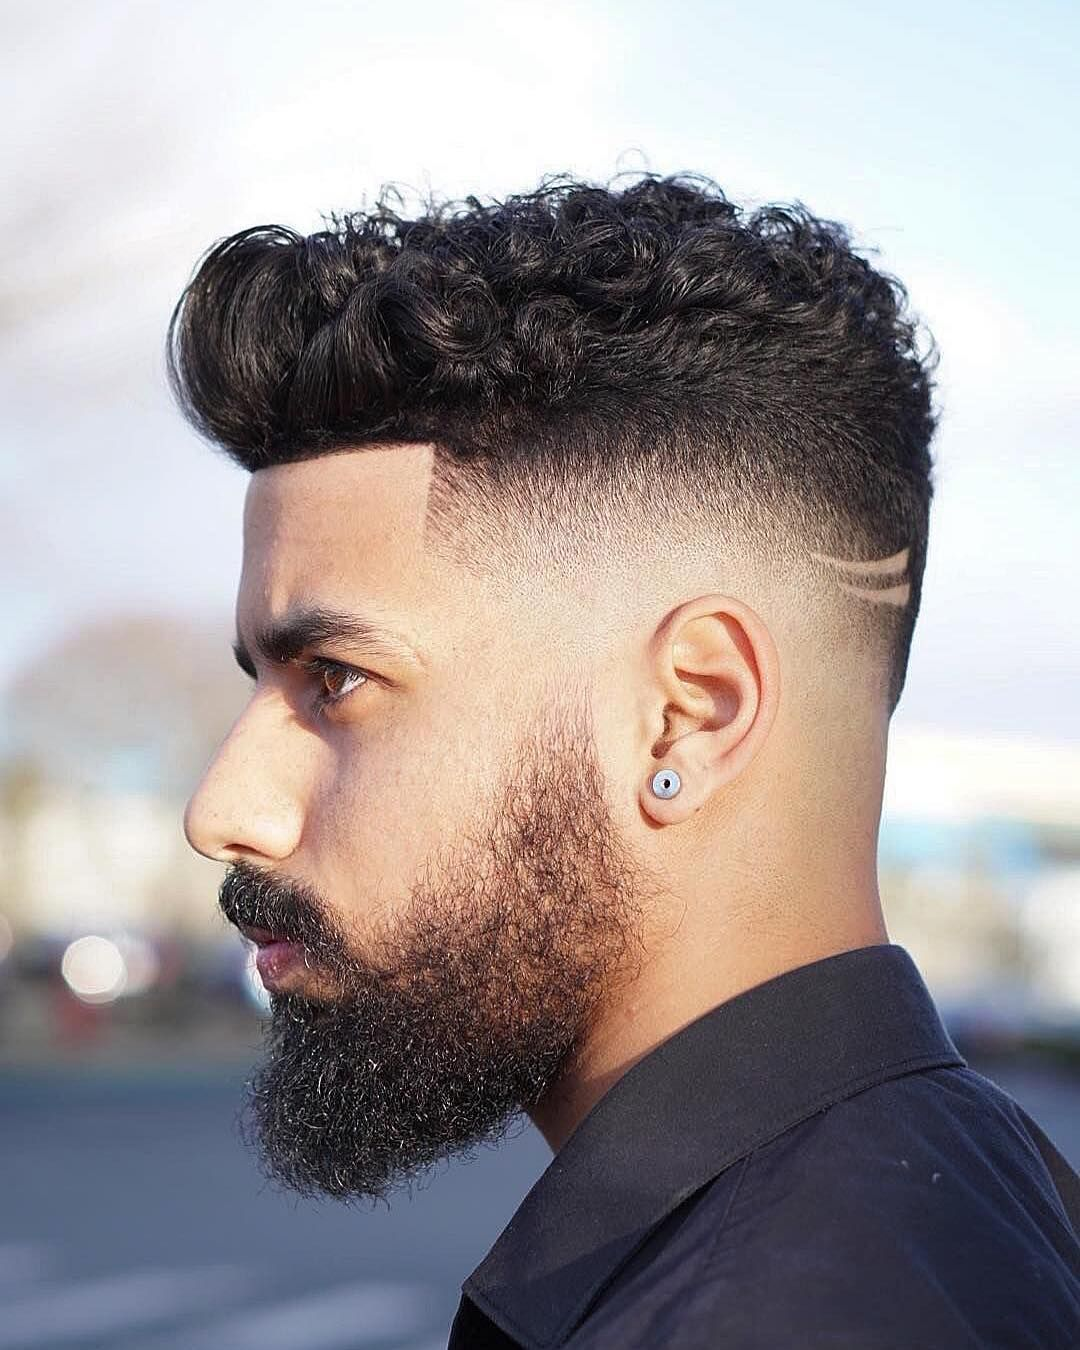 40+ New Fade Haircuts For Men (2020 Update) Fade haircut